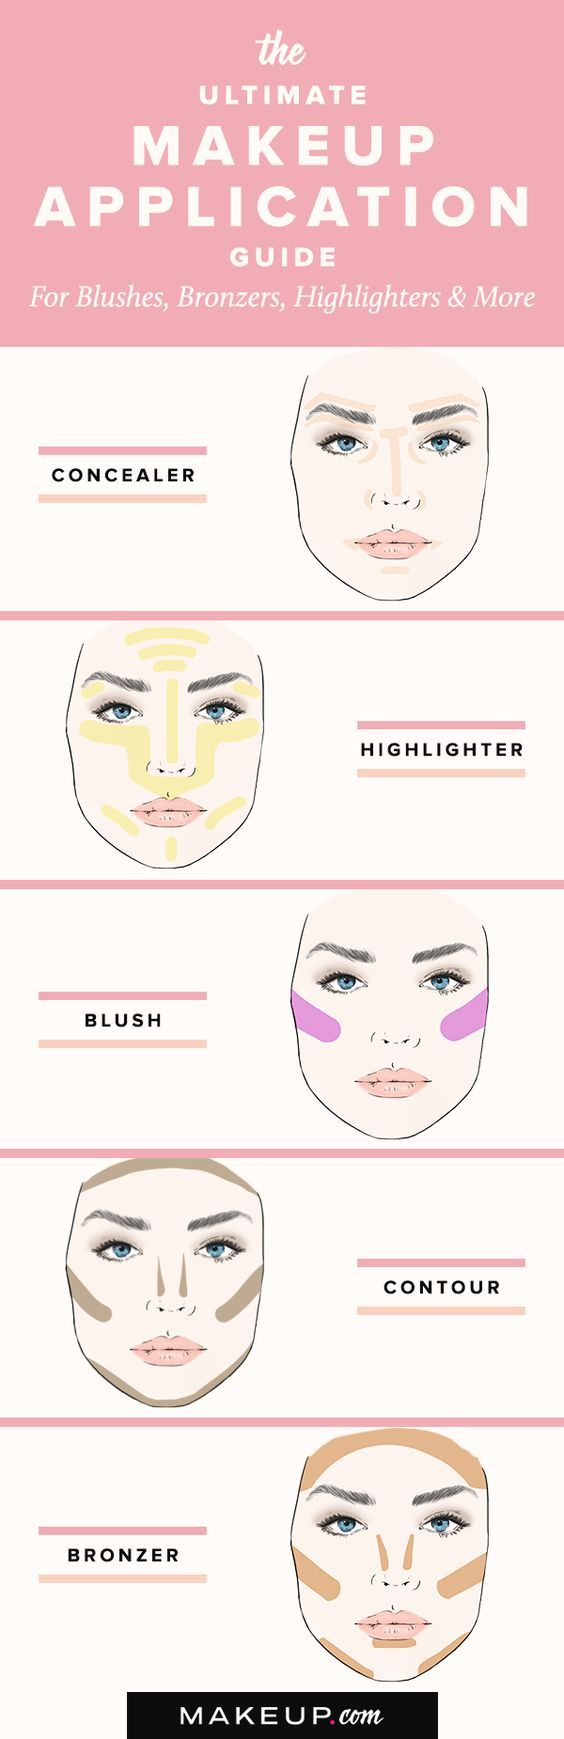 Everything you need to know about applying concealer, highlighter, blush and bronzer the right way. Our guide is the only makeup application guide you need.